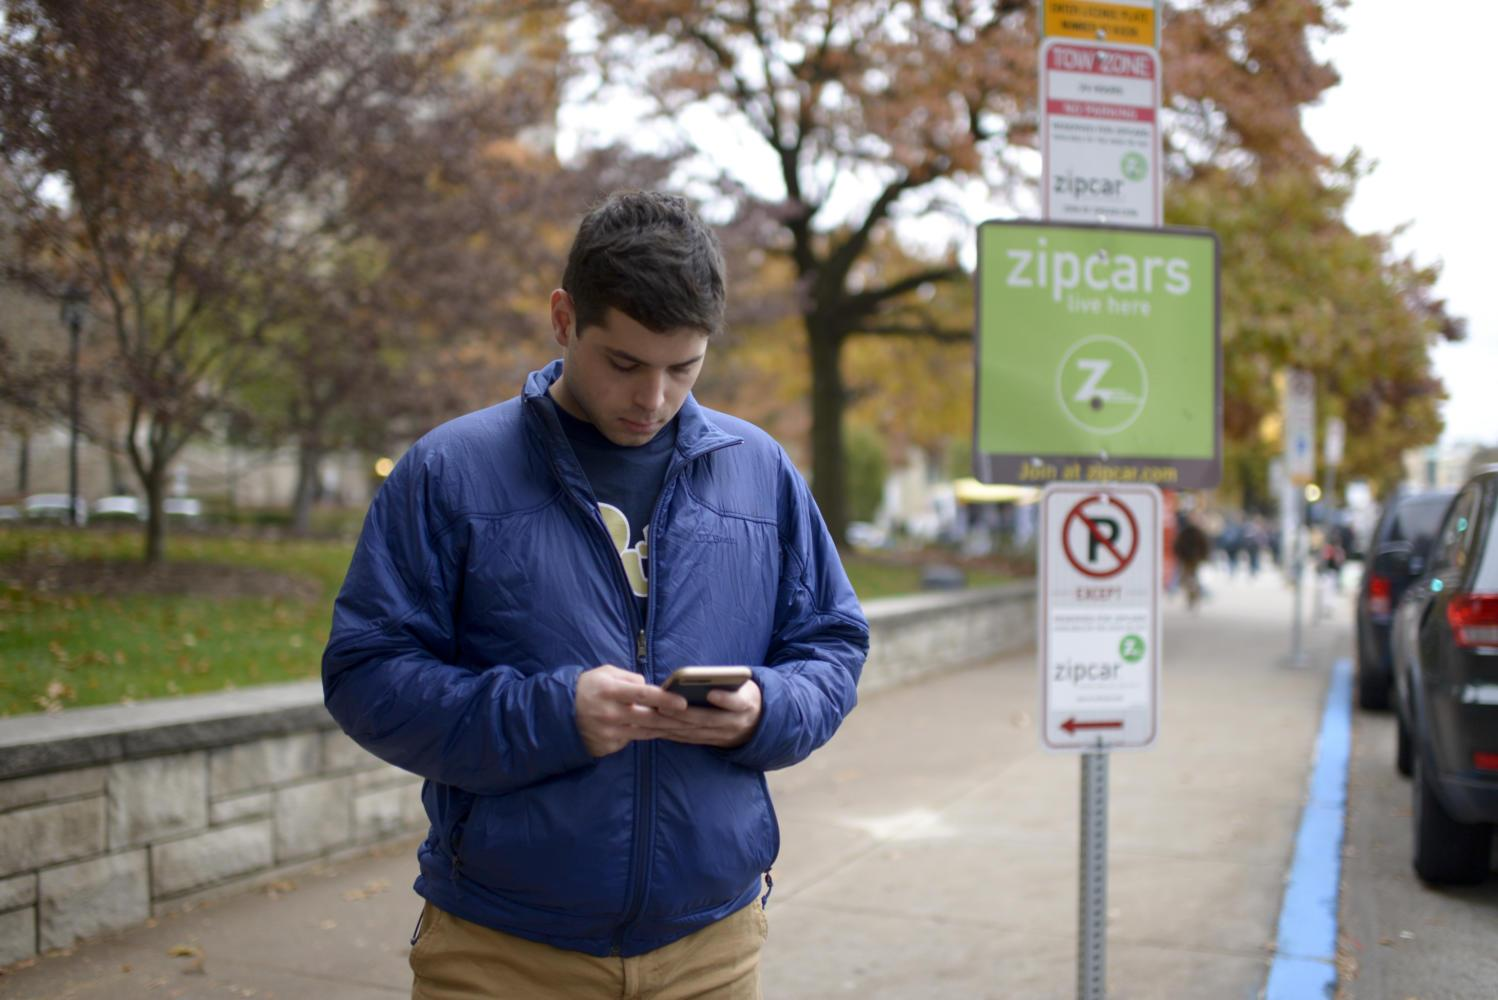 Ian Snyder, a senior political science major, logs into his Zipcar app at the Zipcar spot in front of the William Pitt Union on Forbes Avenue. (Photo by Wenhao Wu | Assistant Visual Editor)